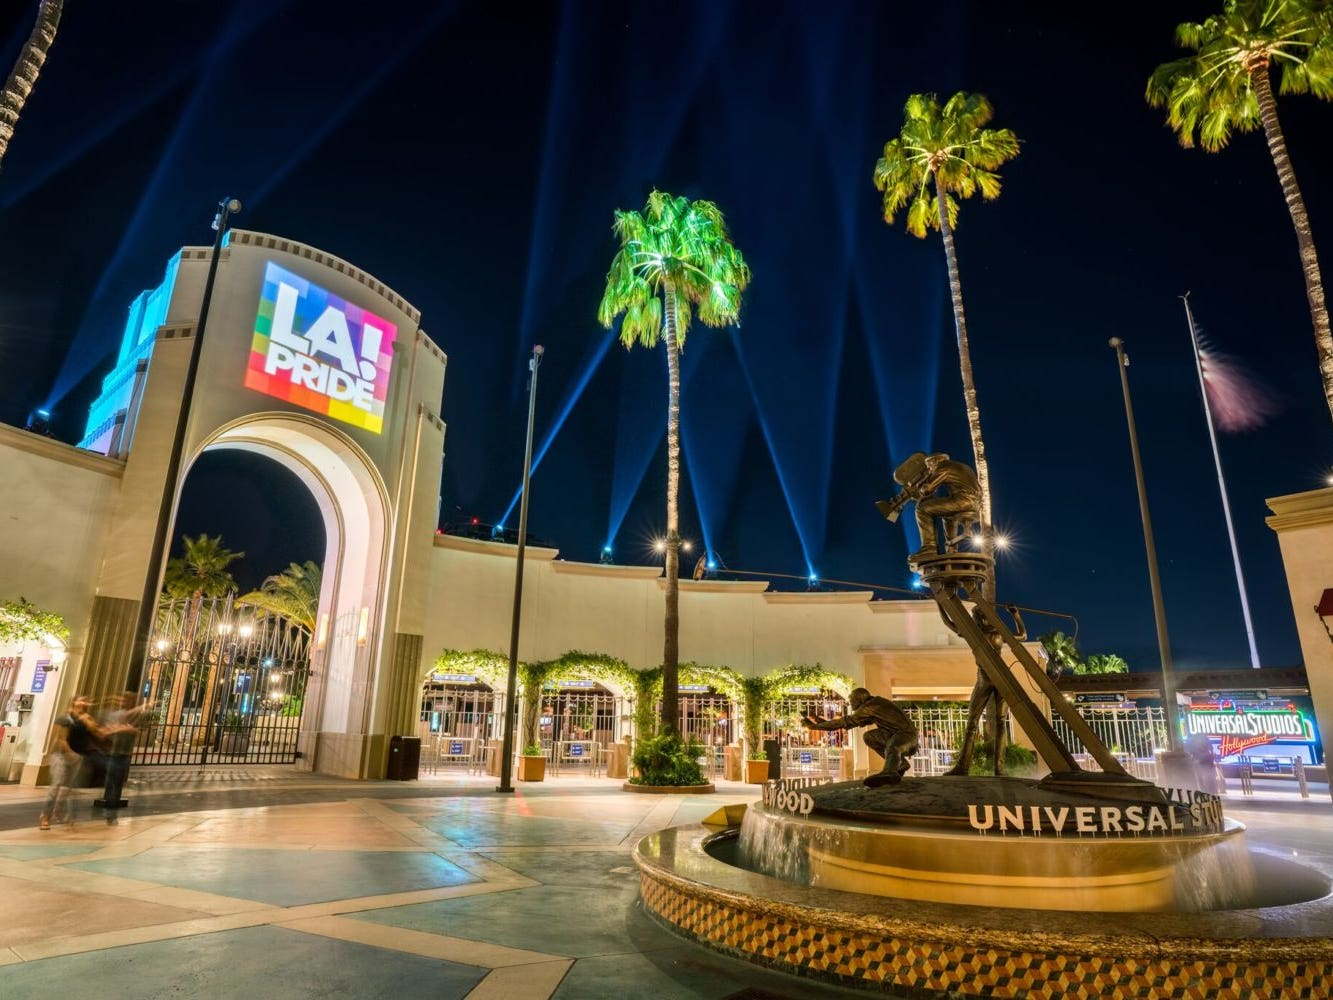 Main image for event titled Pride is Universal 2021 at Universal Studios Hollywood